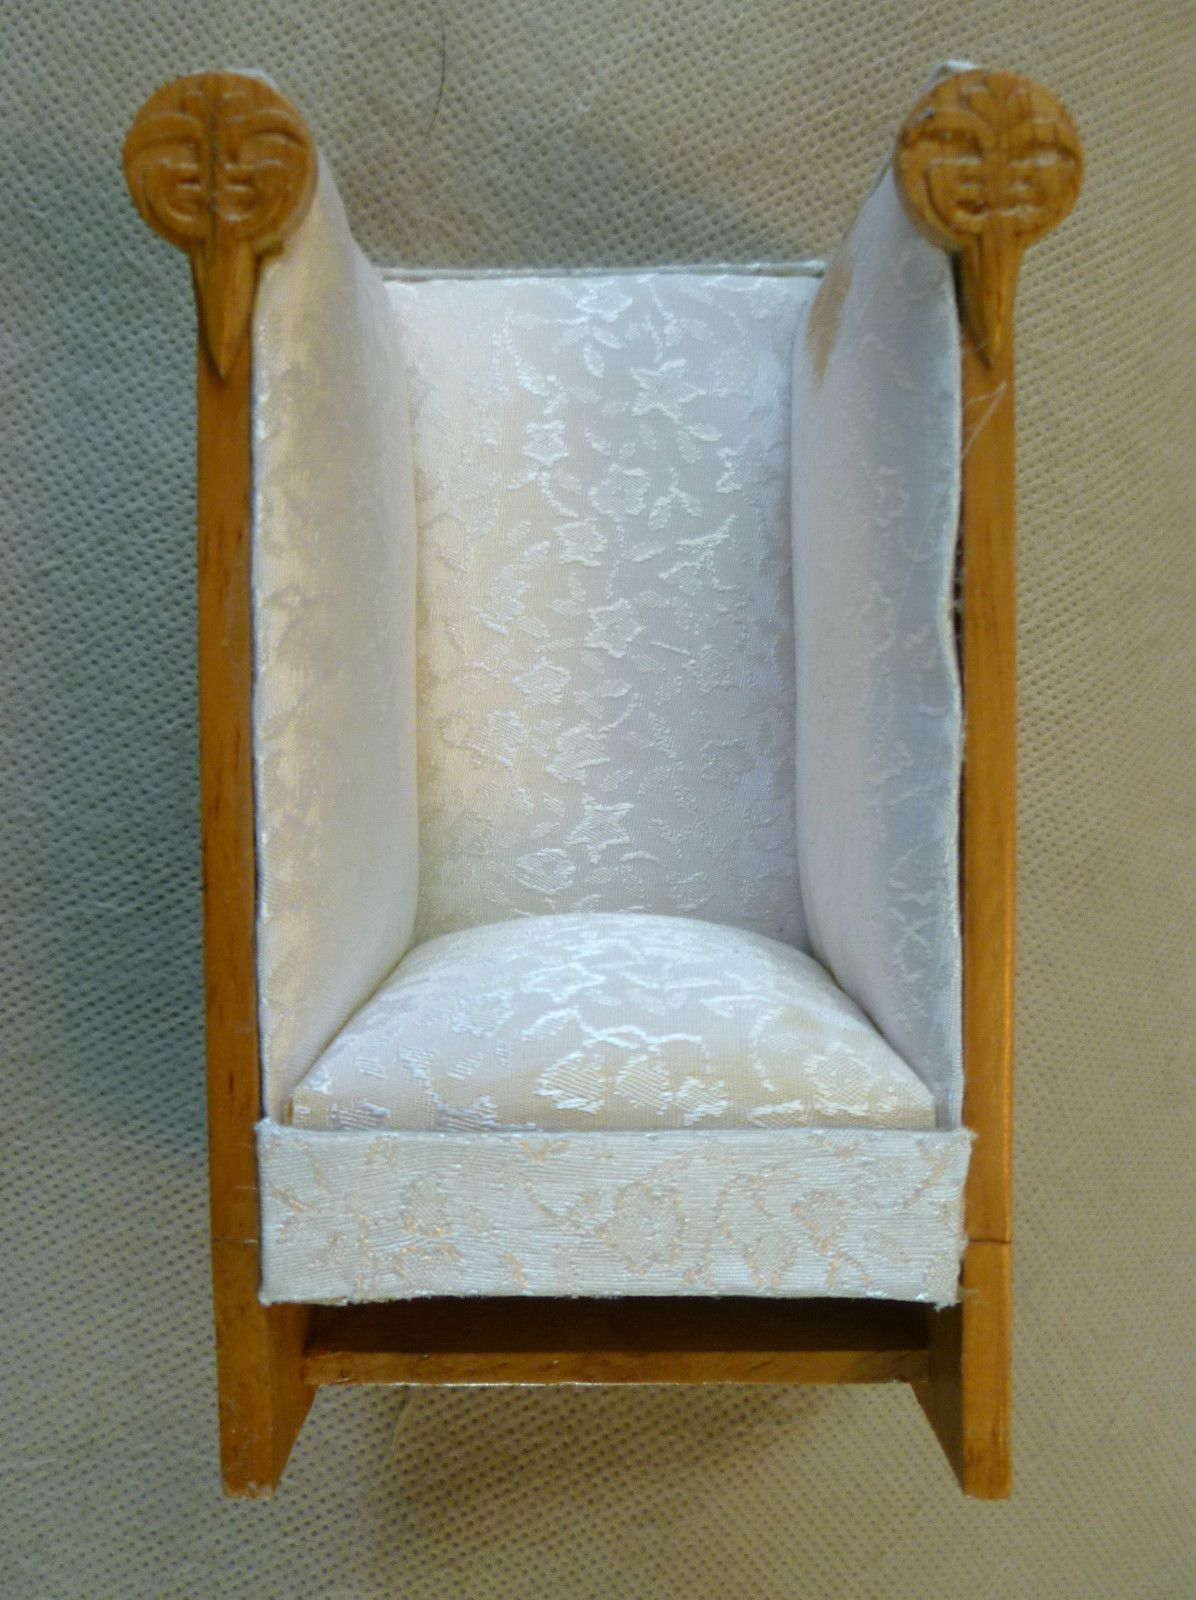 Chair Furniture Emporium dolls house emporium charles rennie mackintosh scottish lug chair